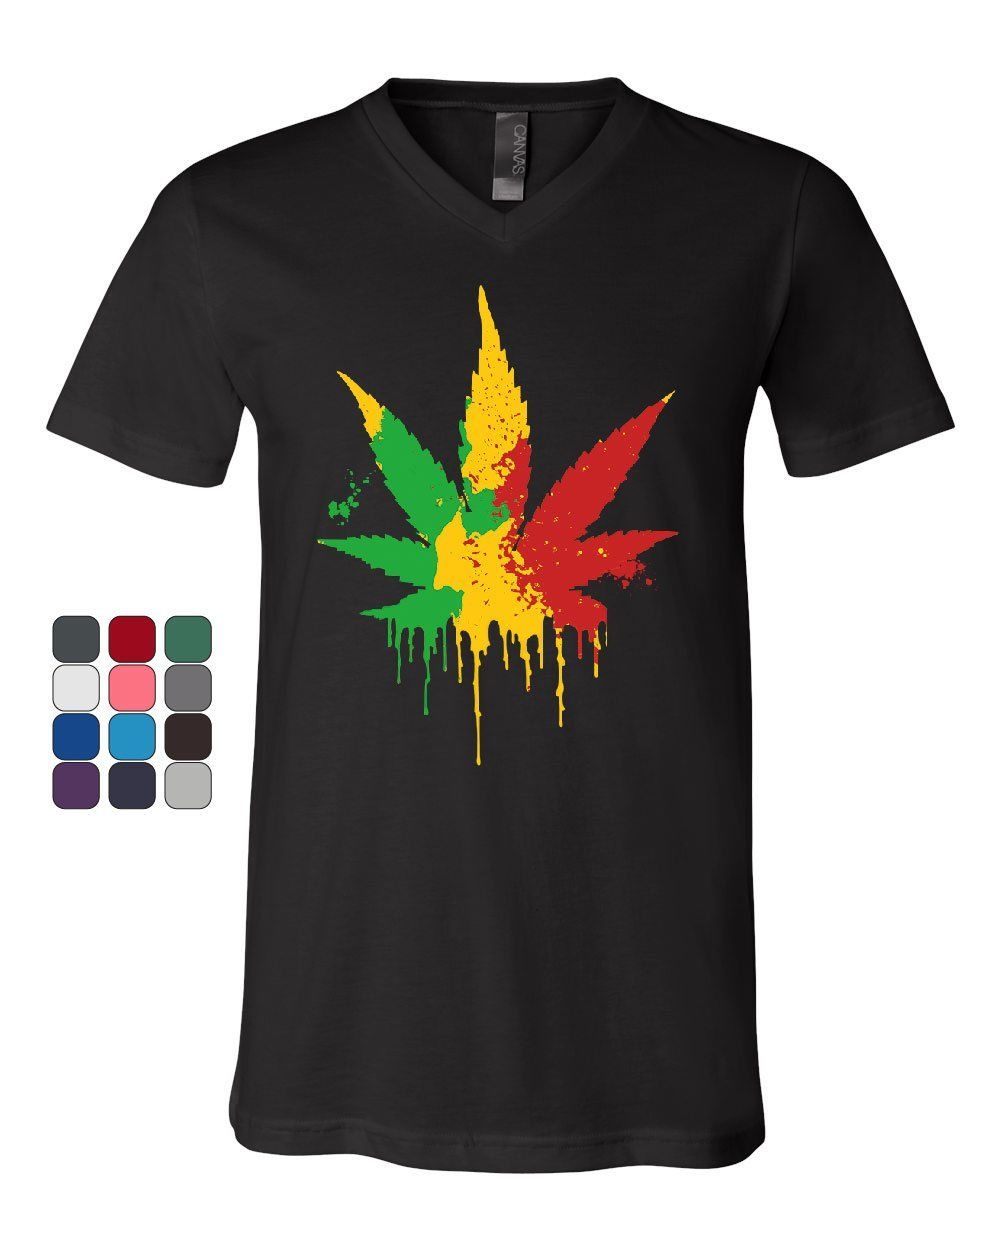 Pot Leaf Rasta V-Neck T-Shirt 420 Weed Smoking cigarettes Reggae Cannabis 1